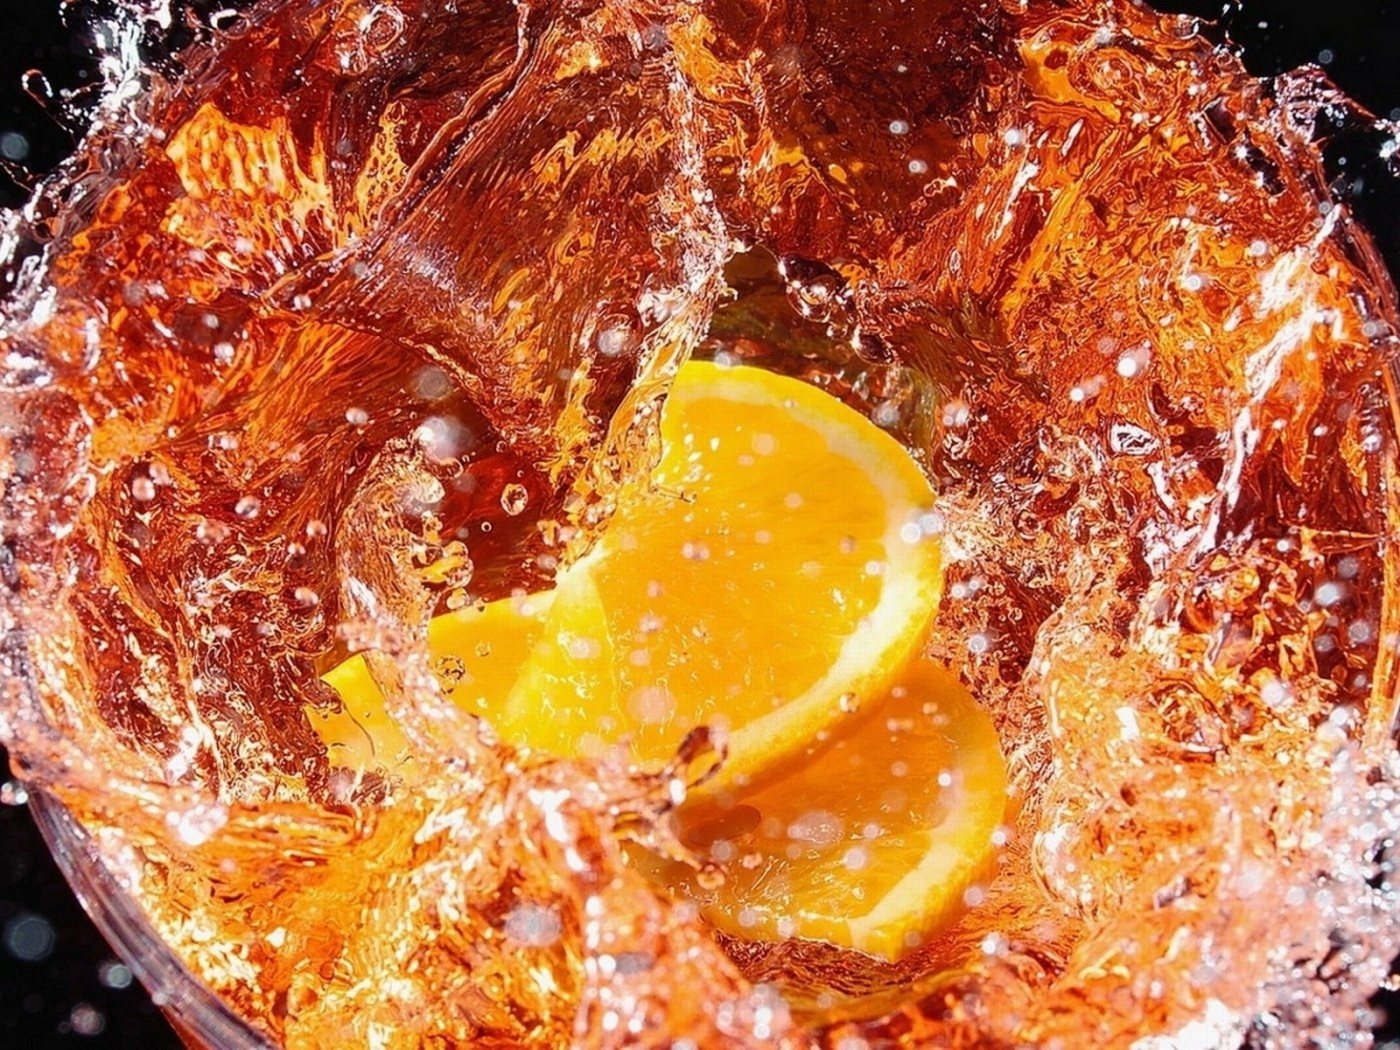 42194 download wallpaper Oranges, Objects screensavers and pictures for free